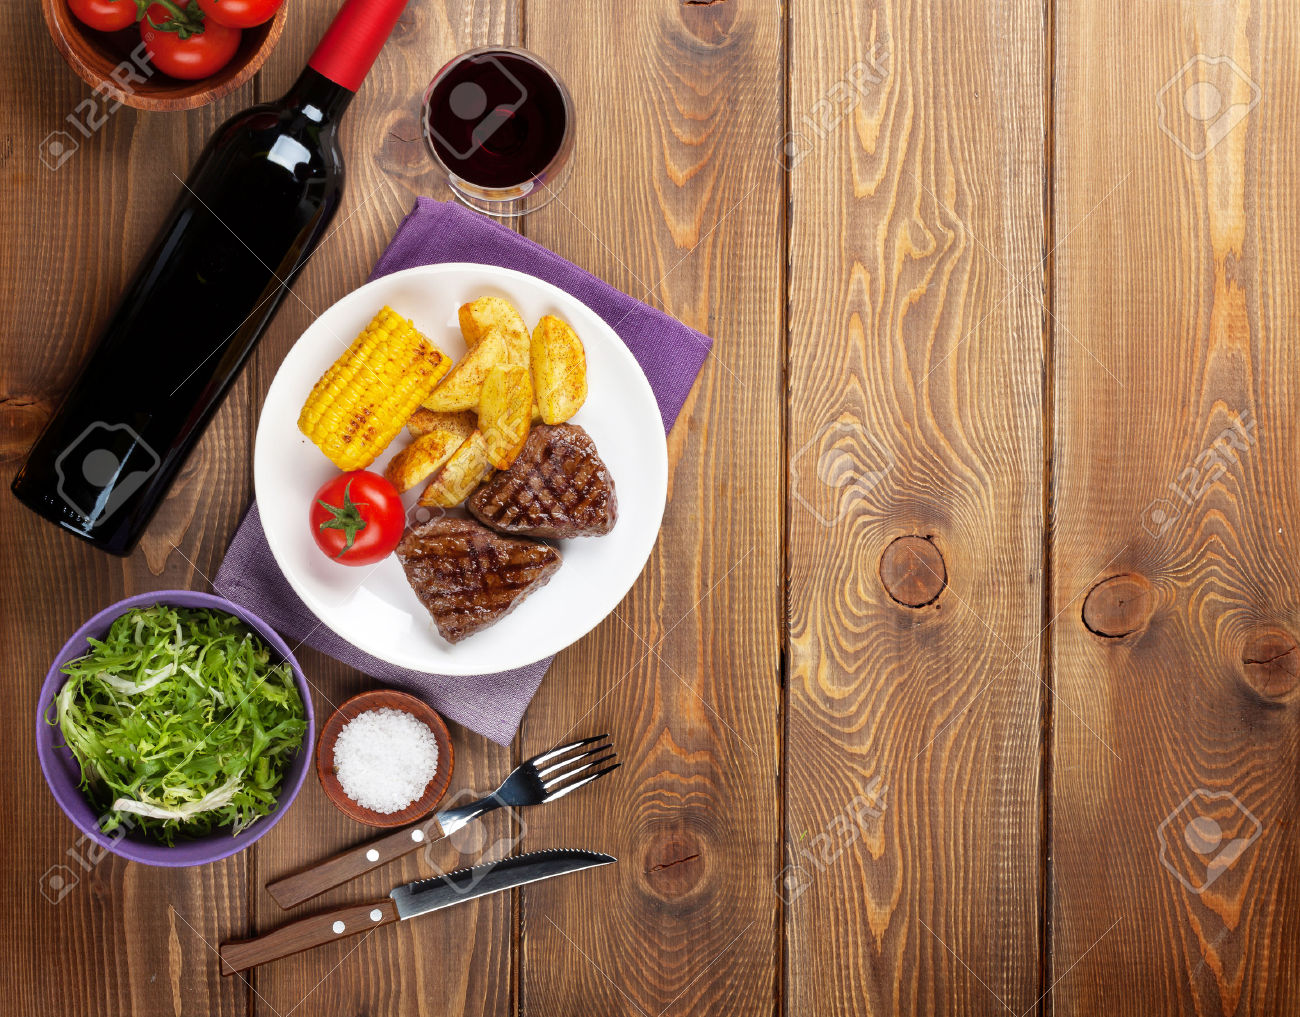 37621241-Steak-with-grilled-potato-corn-salad-and-red-wine-over-wooden-table-Top-view-with-copy-space-Stock-Photo